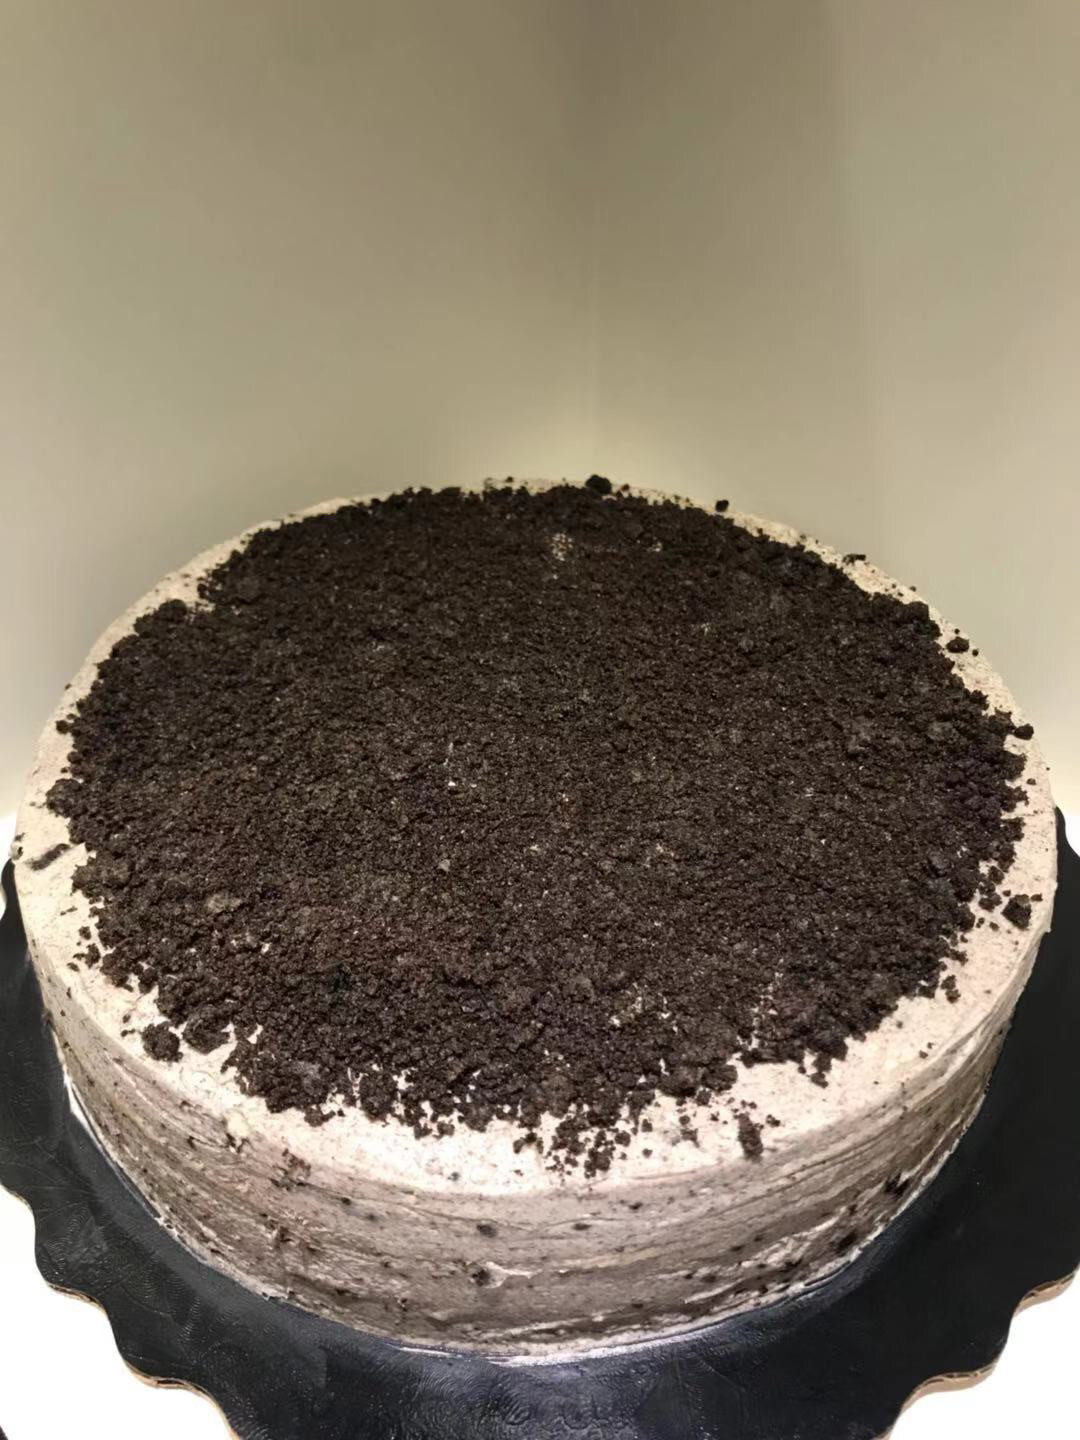 Oreo Crepe Cake 6 inch (also available in 8 and 10 inch)